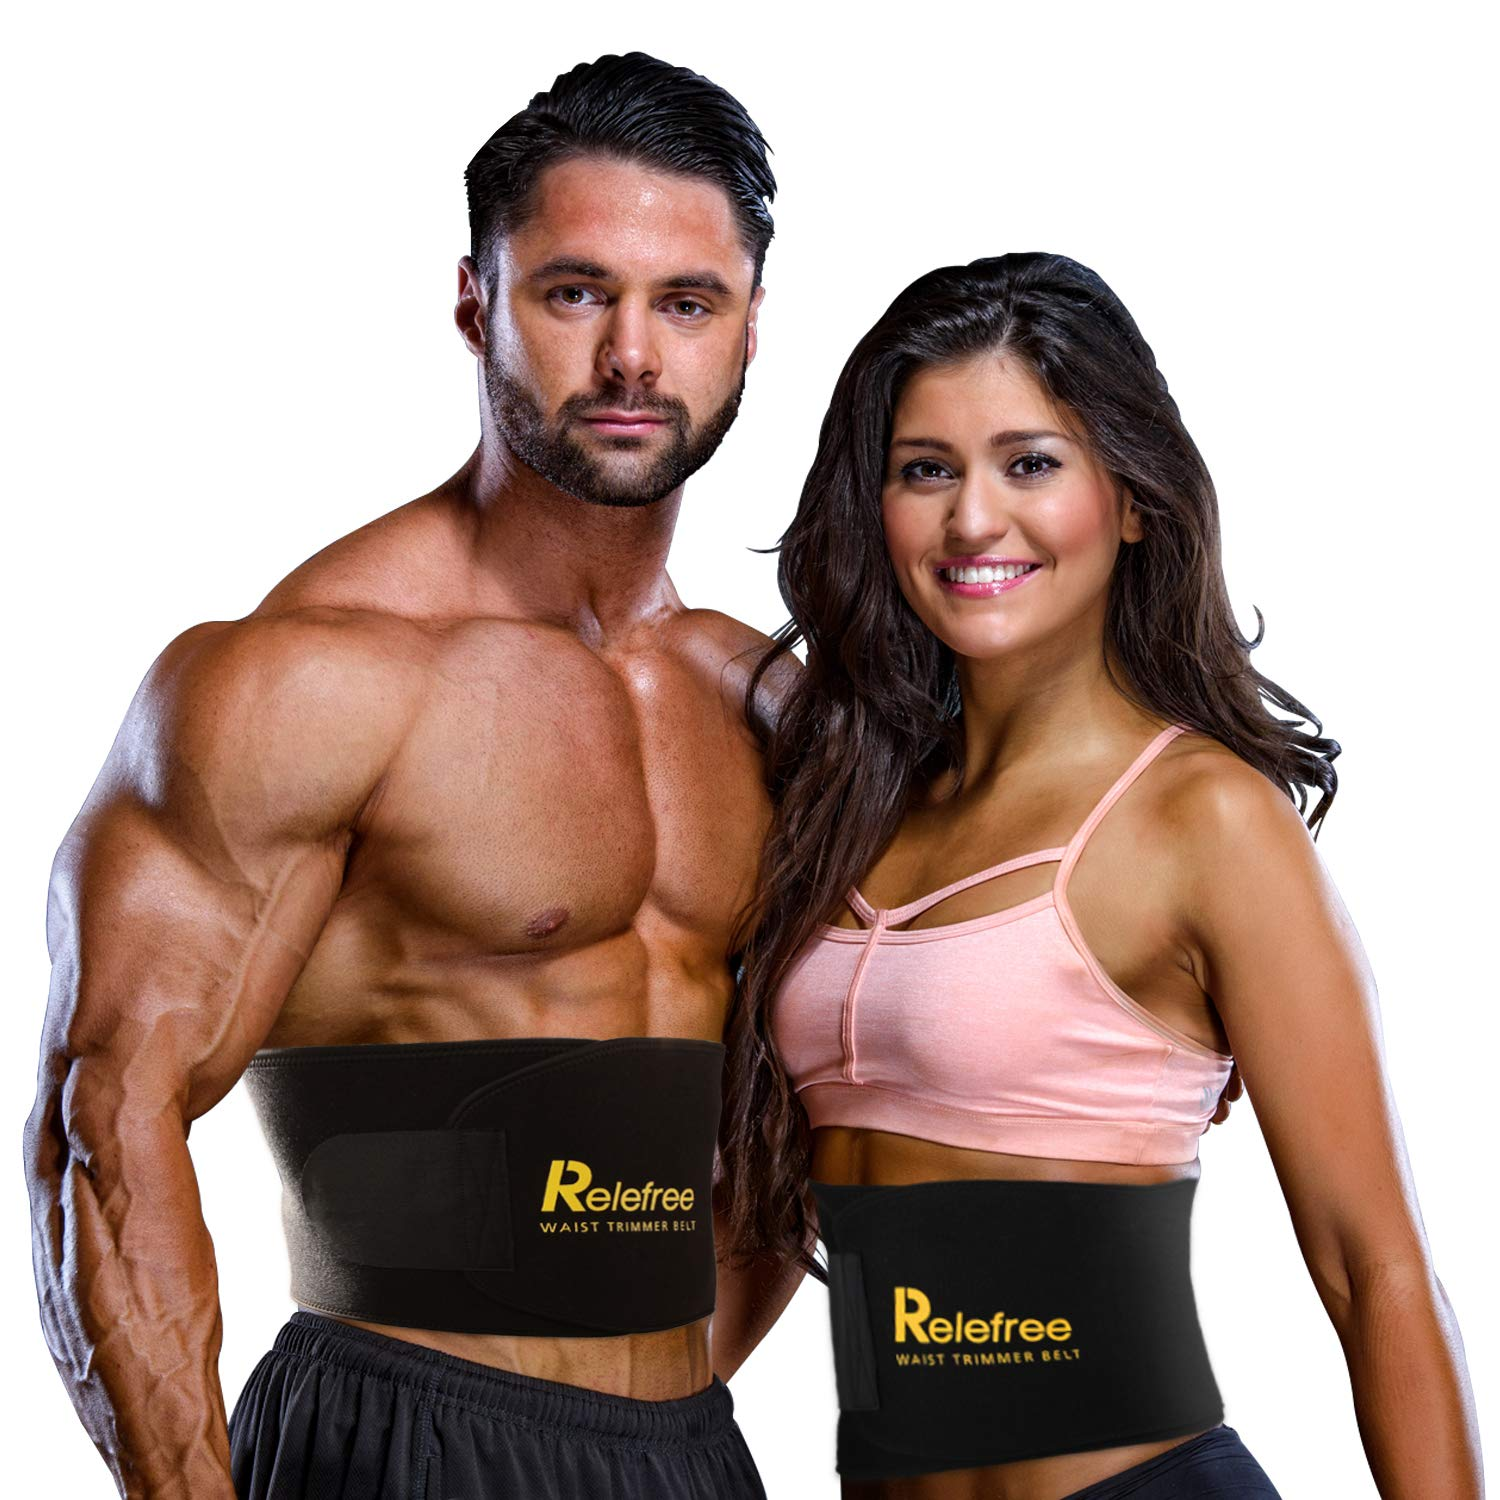 ac31e9212e7 Amazon.com  Relefree Waist Trimmer Belt